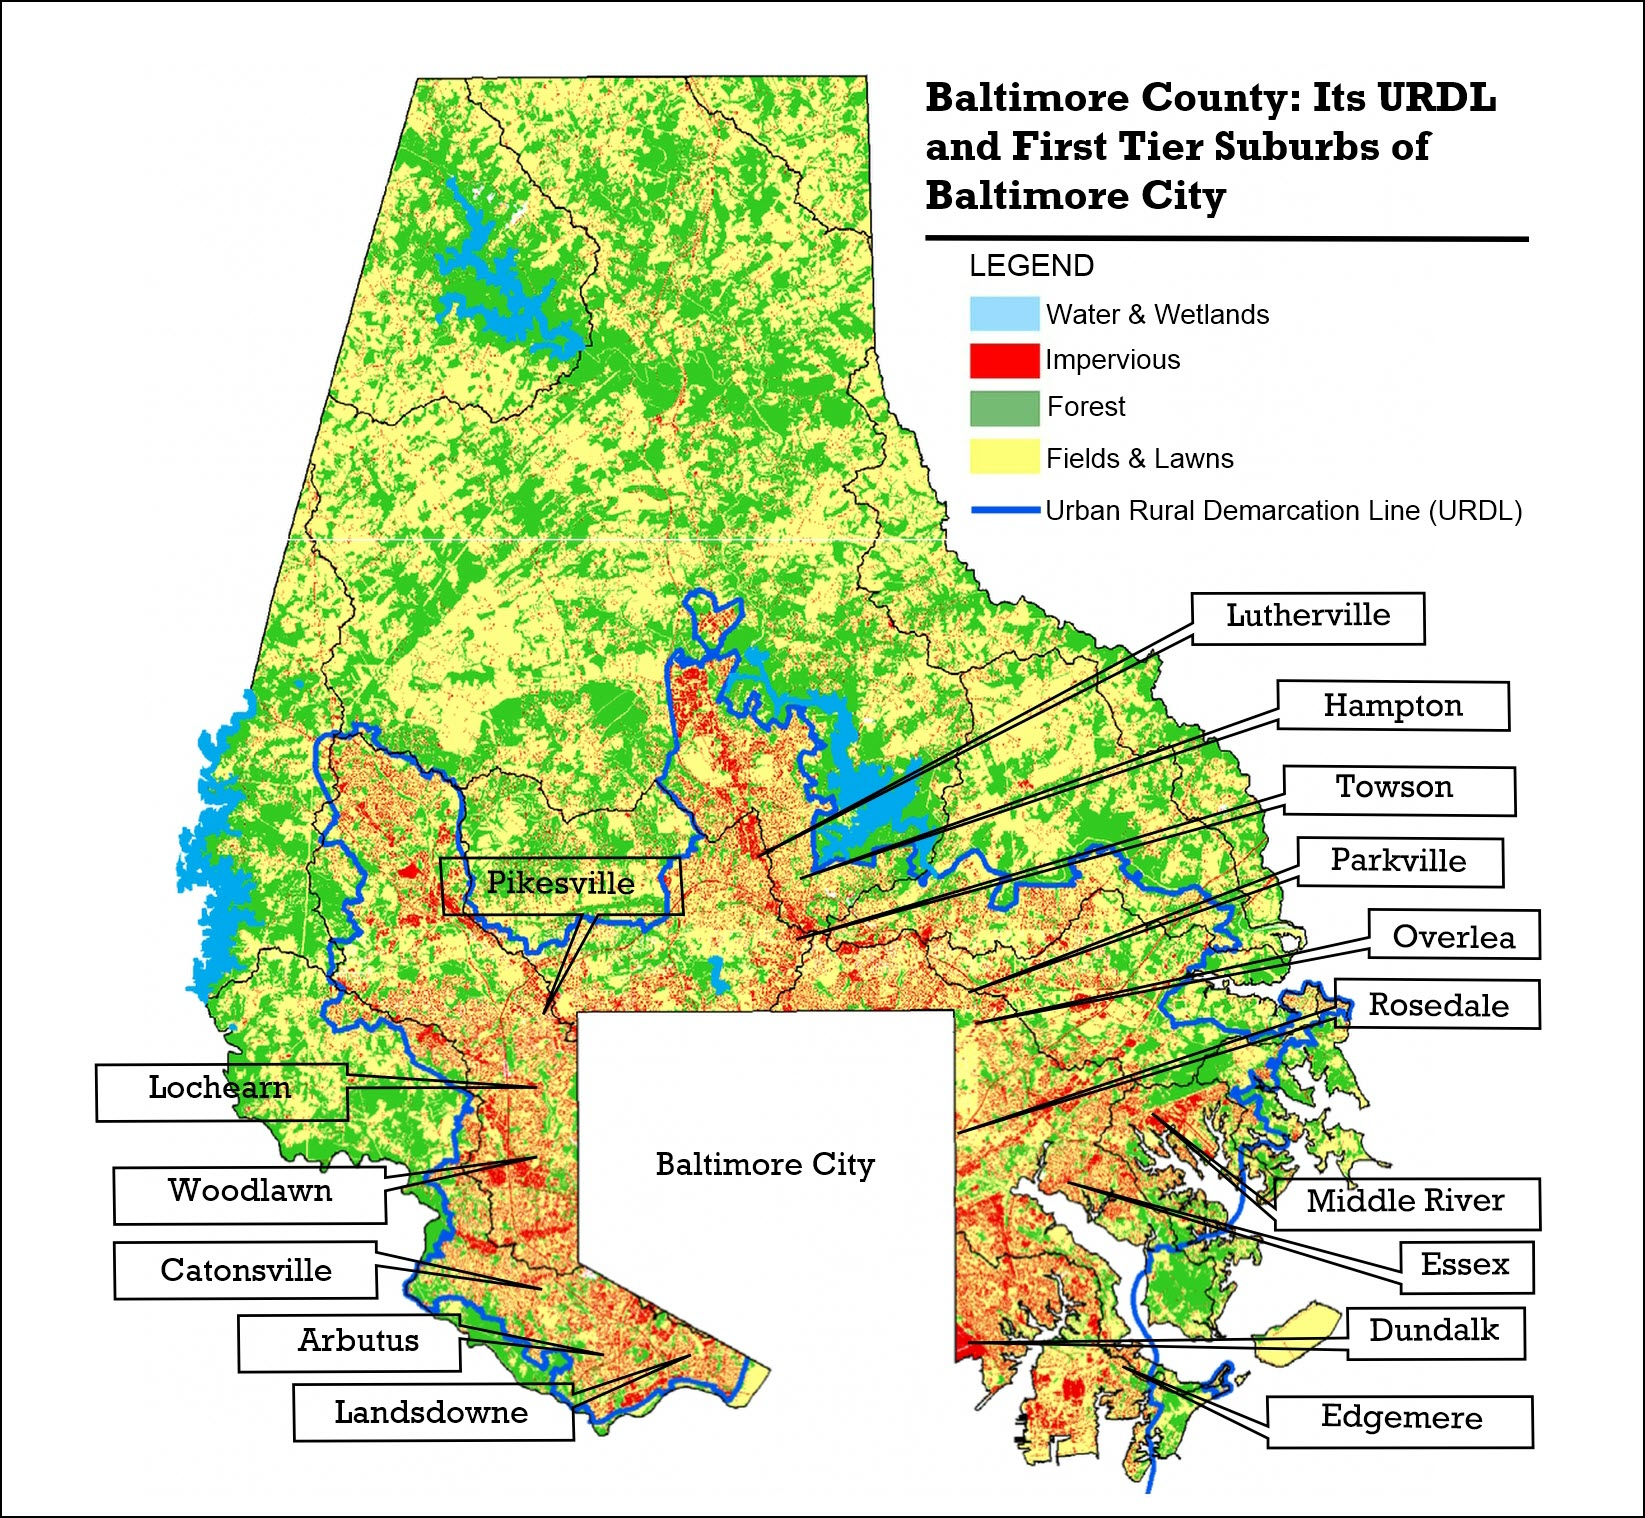 Baltimore County Map Baltimore County: At a Crossroads  AGAIN!   NeighborSpace of